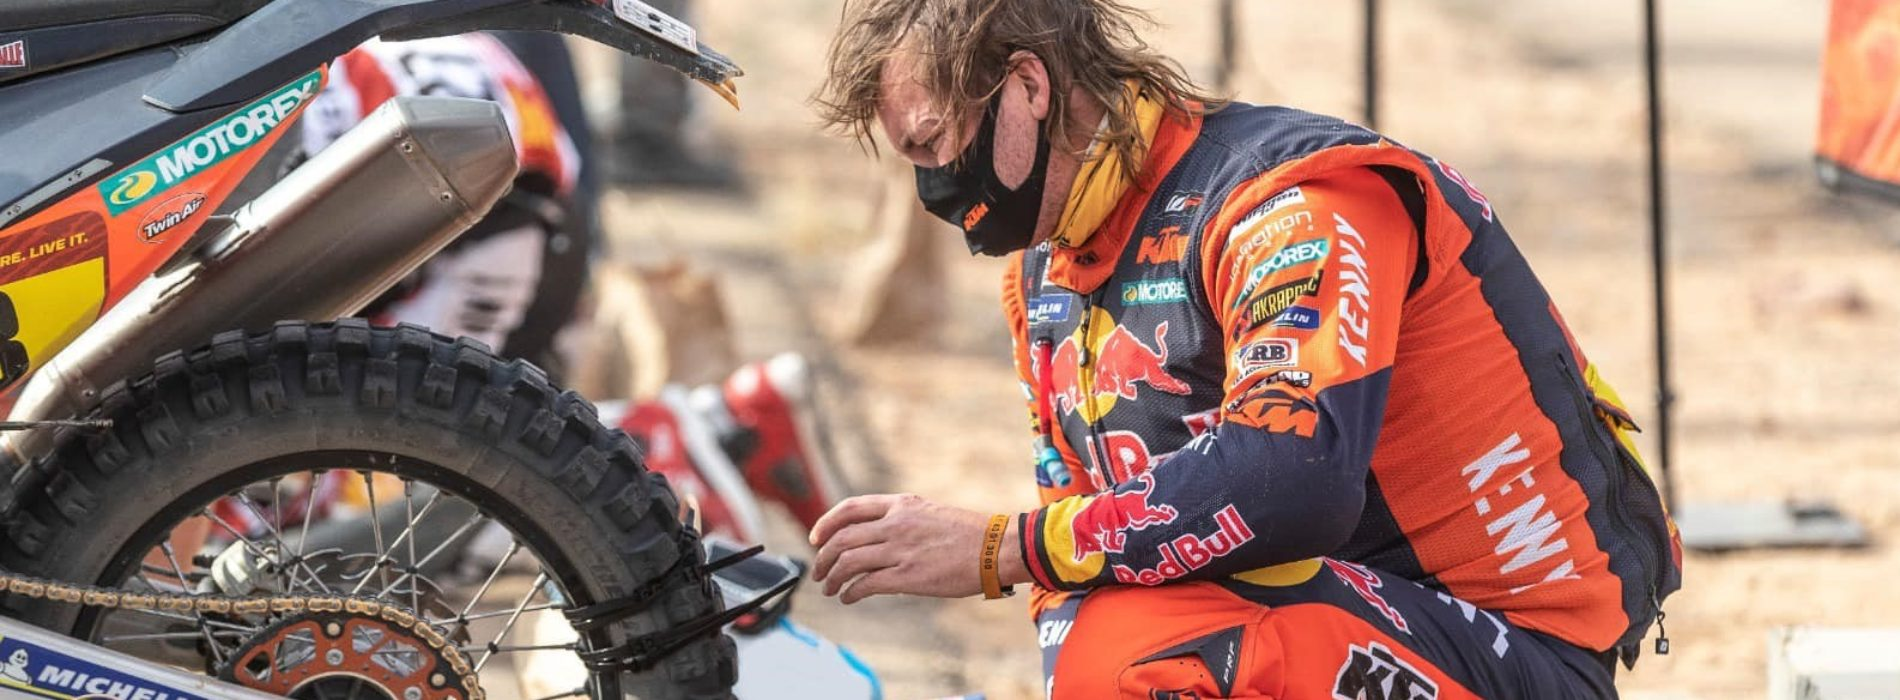 Dakar Rally- the ultimate test of Rider and machine versus terrain under time!